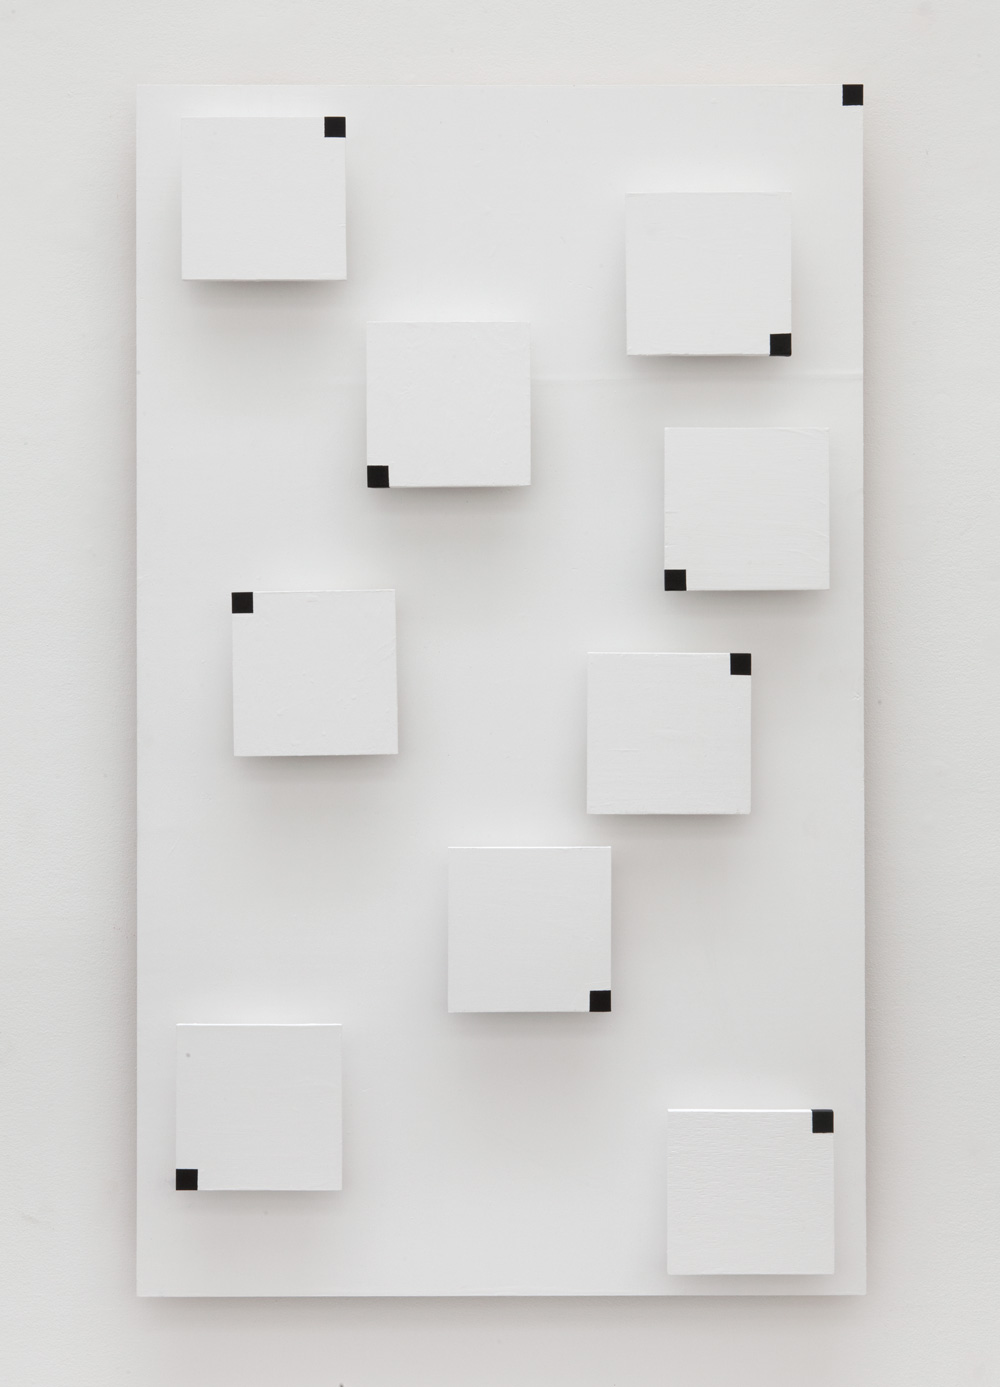 Placement of Unitary Situations , 2015 個景置 ( Kokeichi ) Wood, paint 58 7/8 x 35 3/8 x 3 3/4 inches 149.5 x 89.9 x 9.5 centimeters